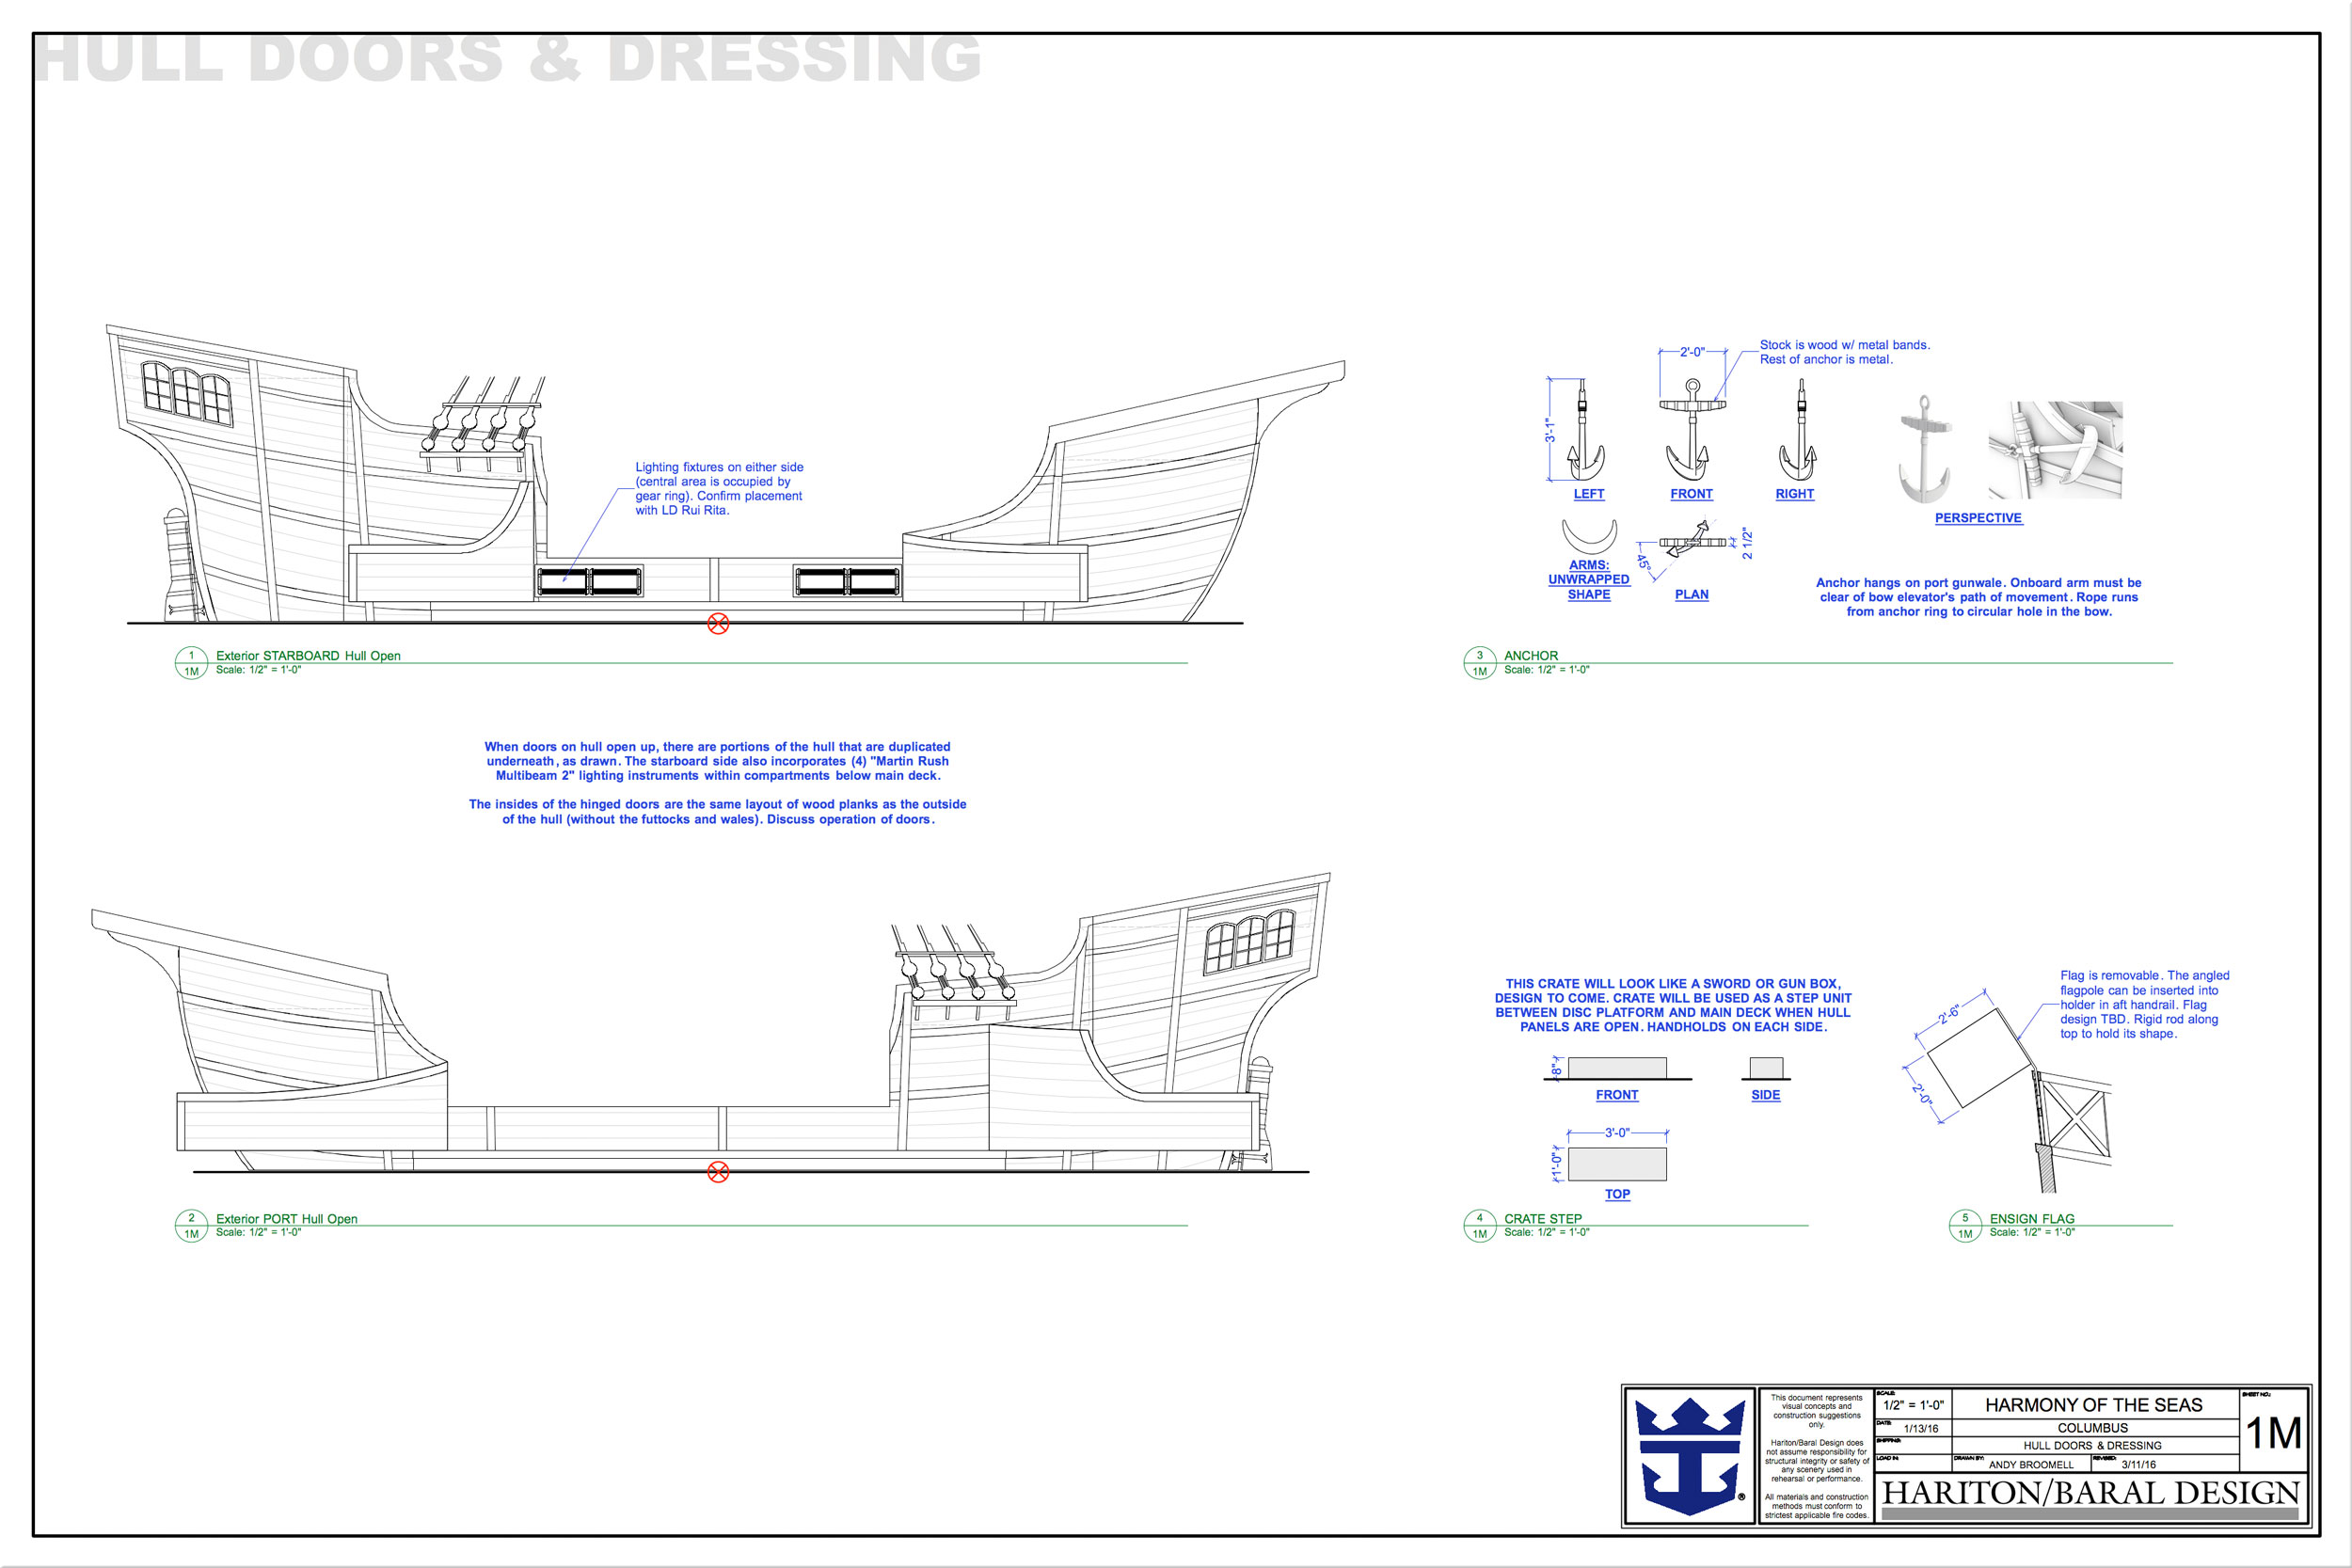 andy-broomell-drafting-columbus12-musical-vectorworks-scenic-design-scenery-plans-sailing-ship.jpg